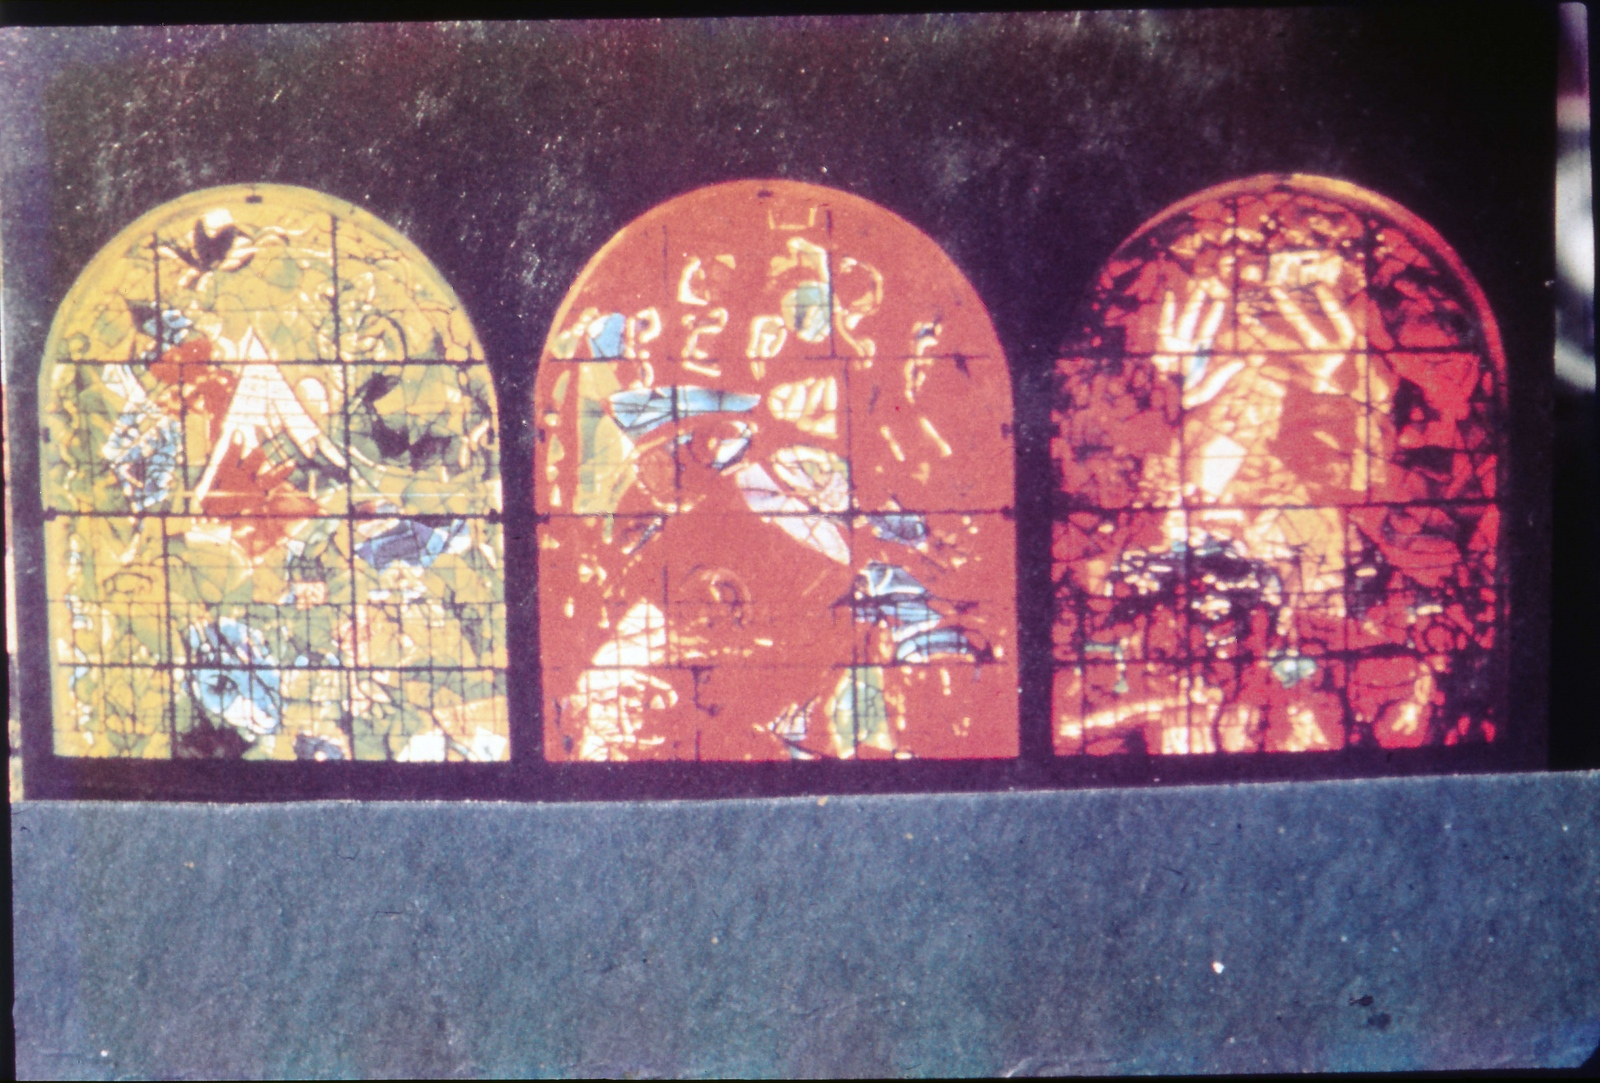 The twelve Chagall windows